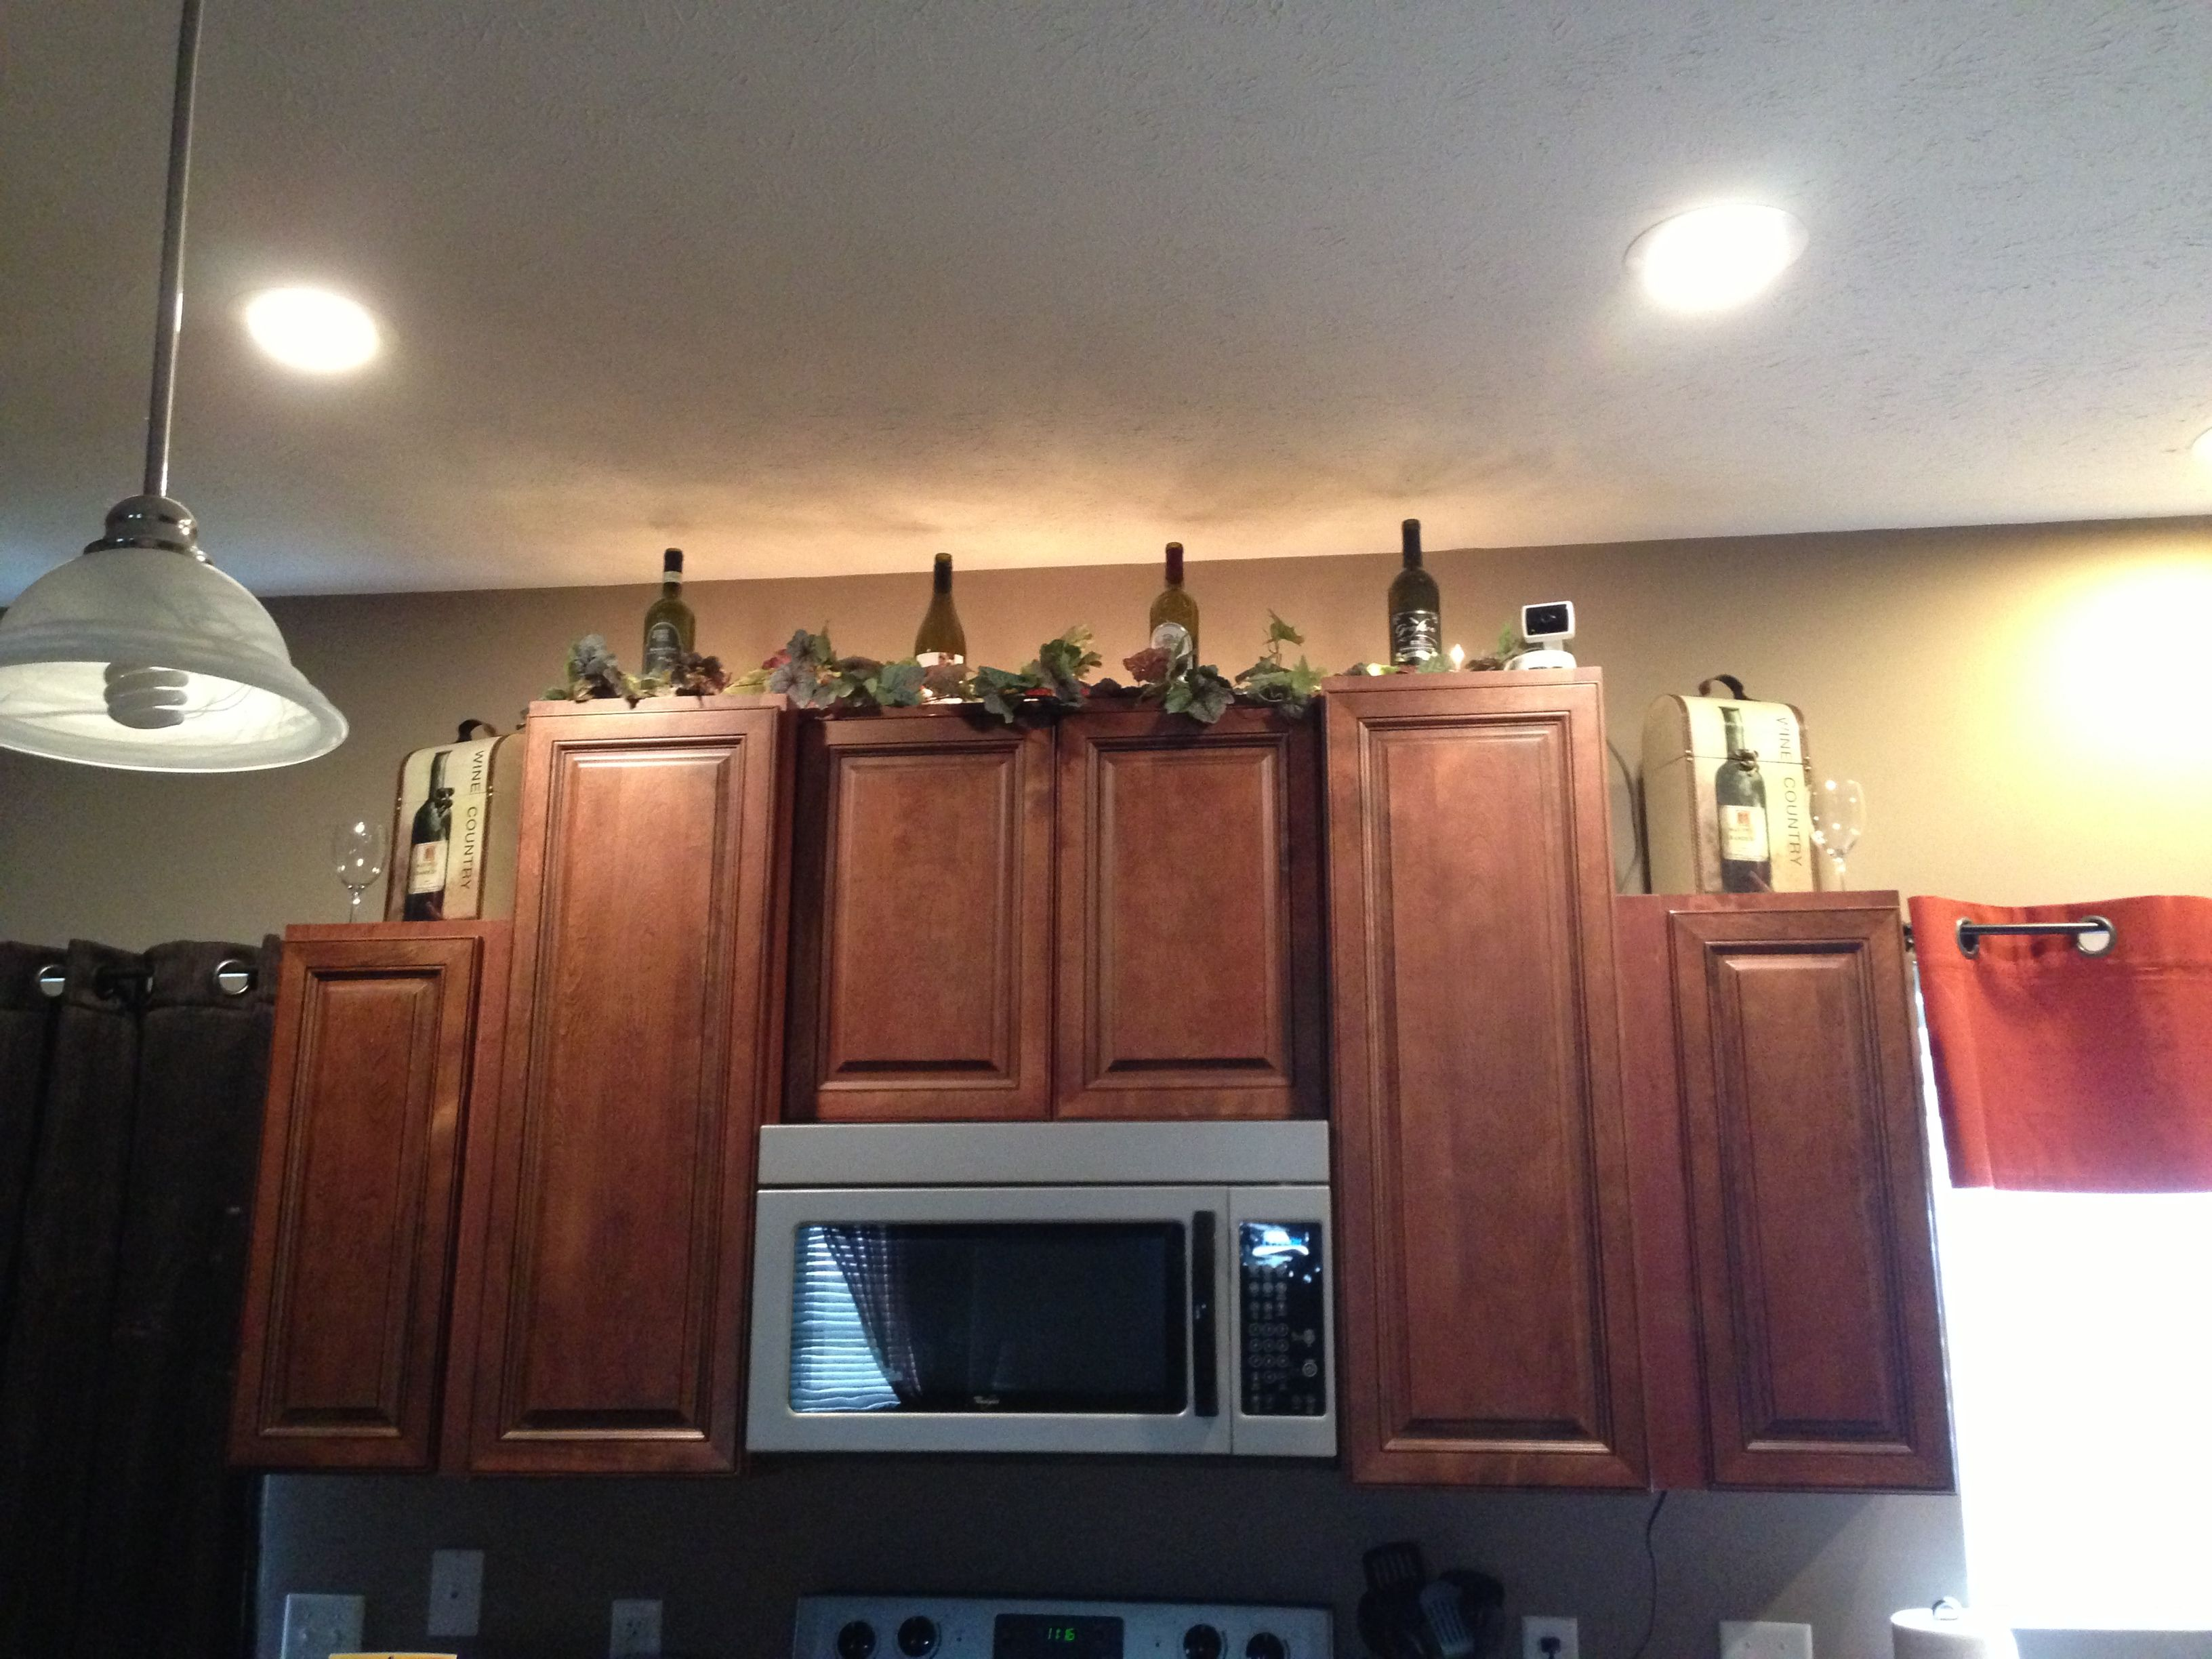 Wine bottle kitchen cabinet decorations